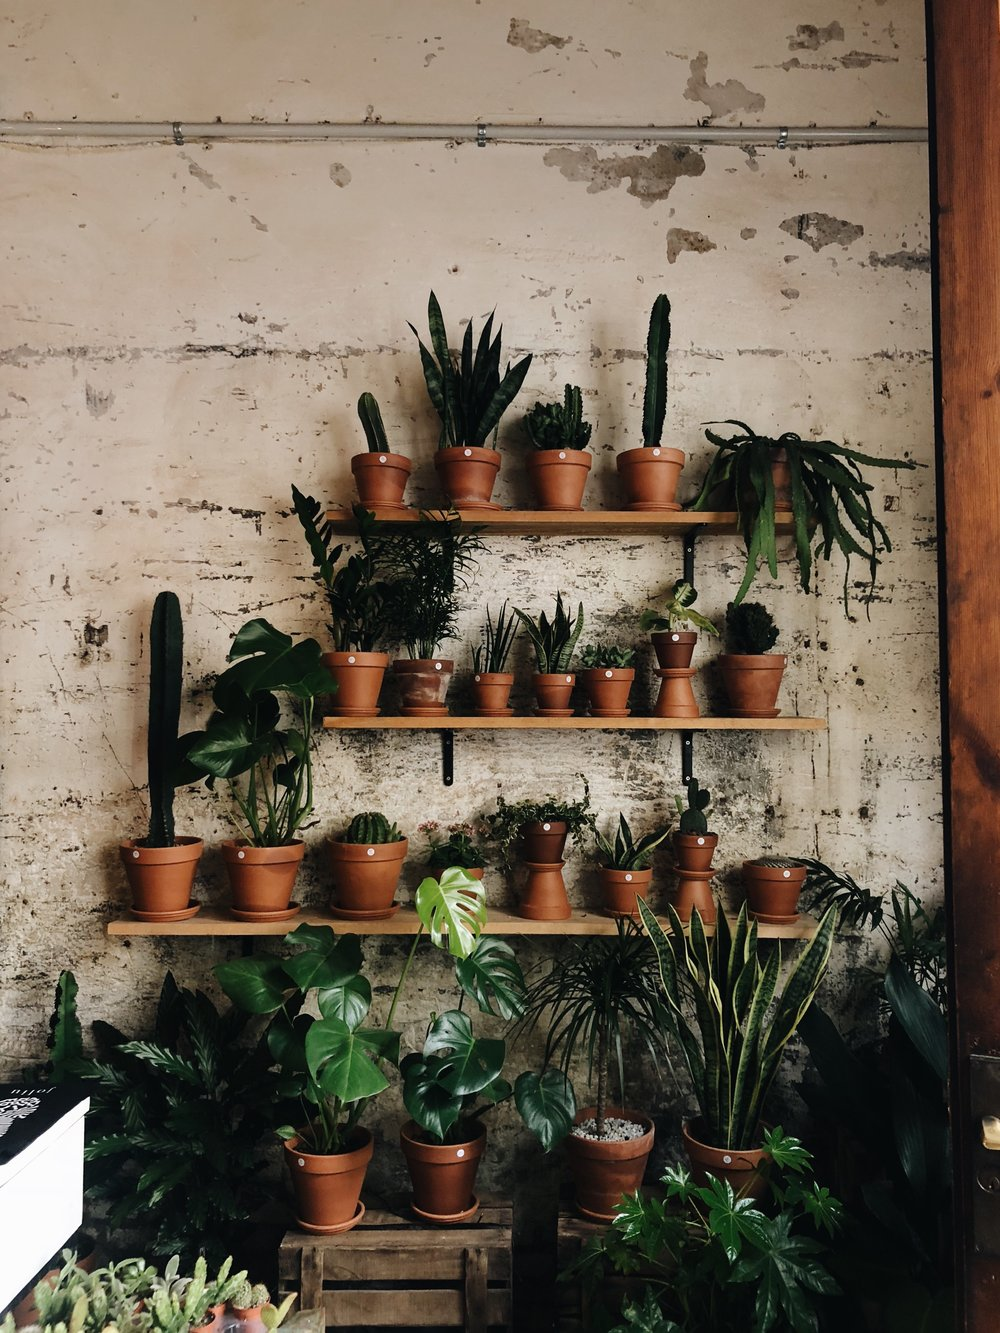 Espai Joliu  / / / My favorite plant and coffee shop.